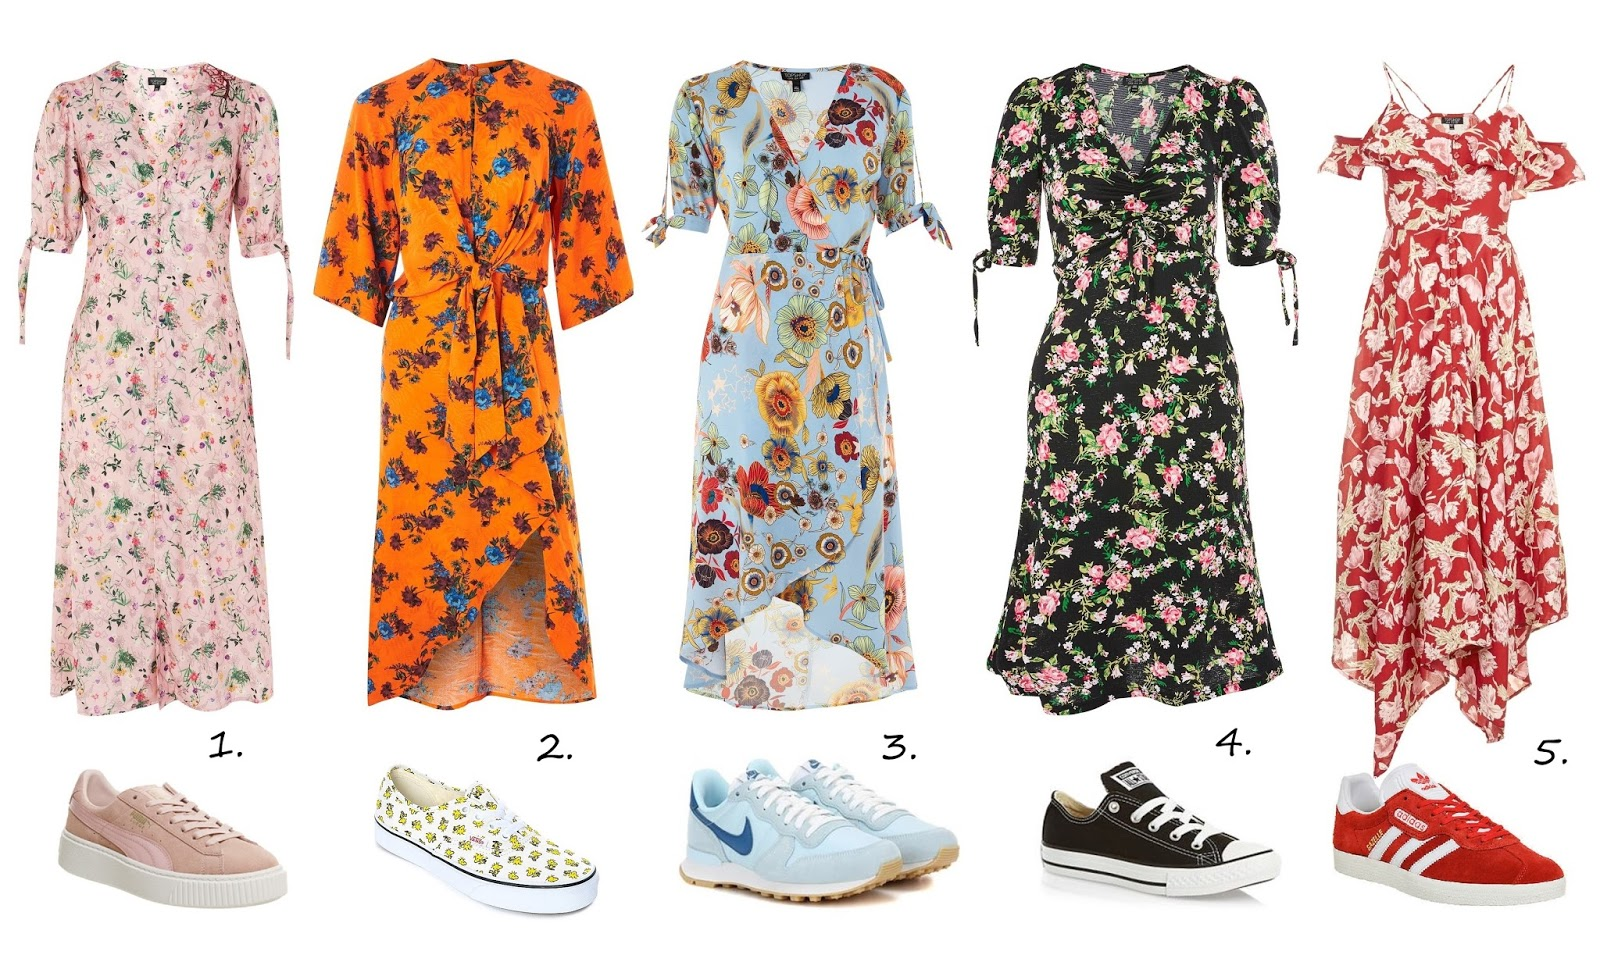 floral midi dress with matching sneakers outfit